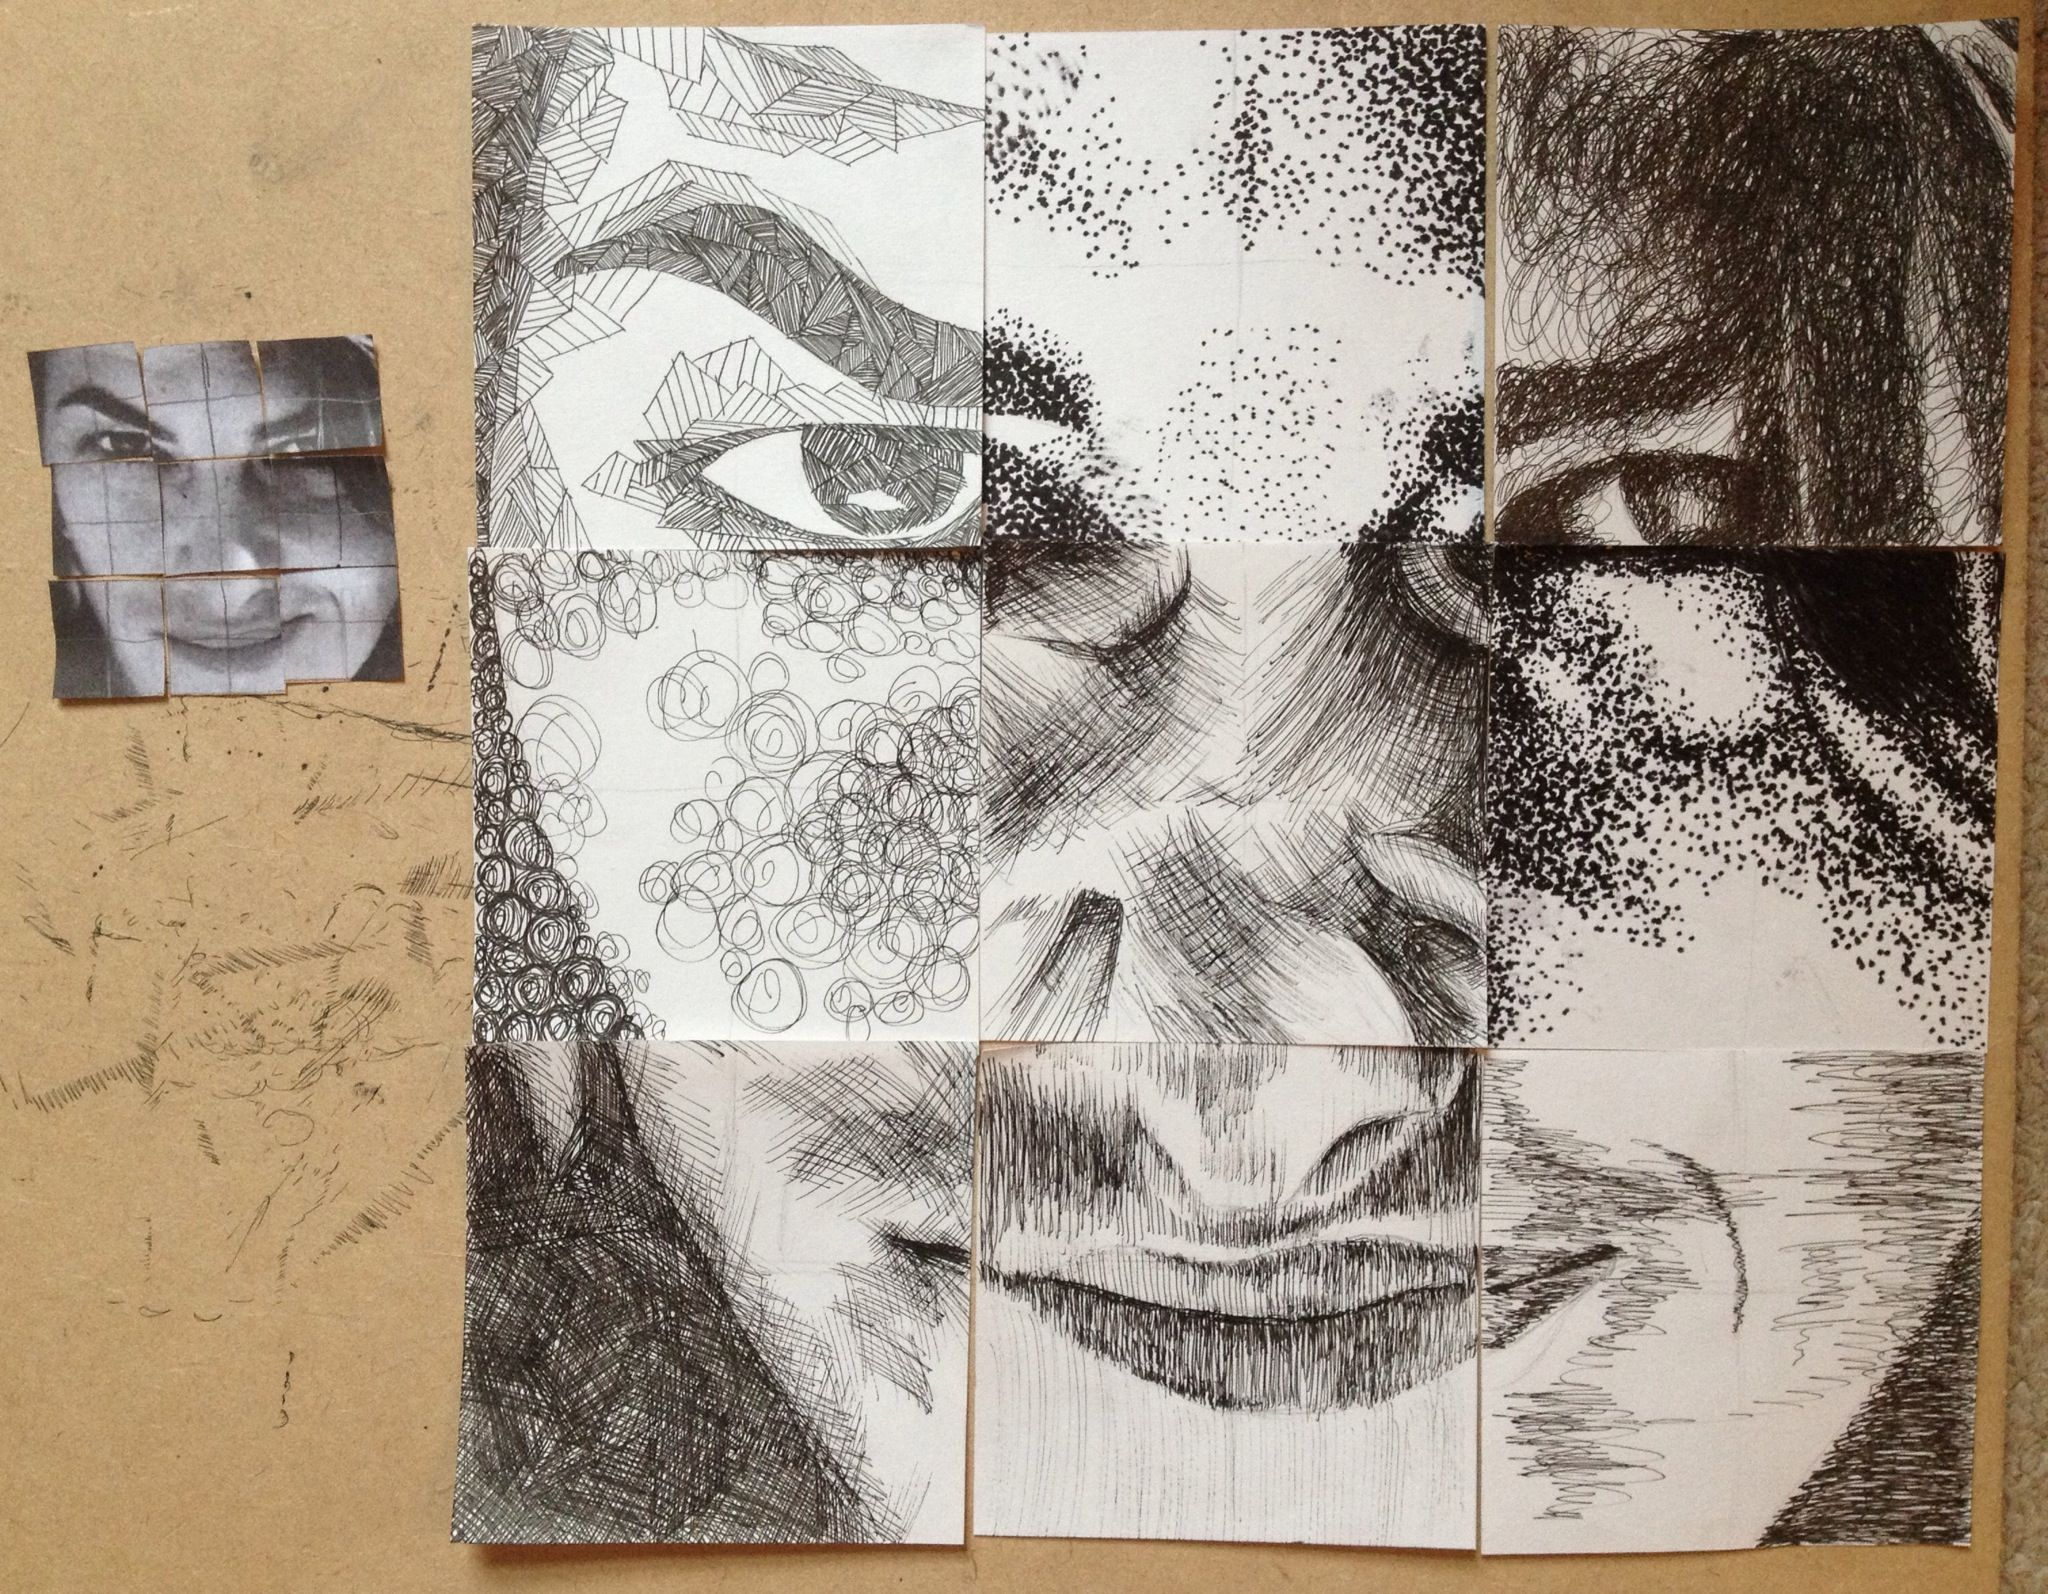 In Art What Can I Draw On Acetate With?